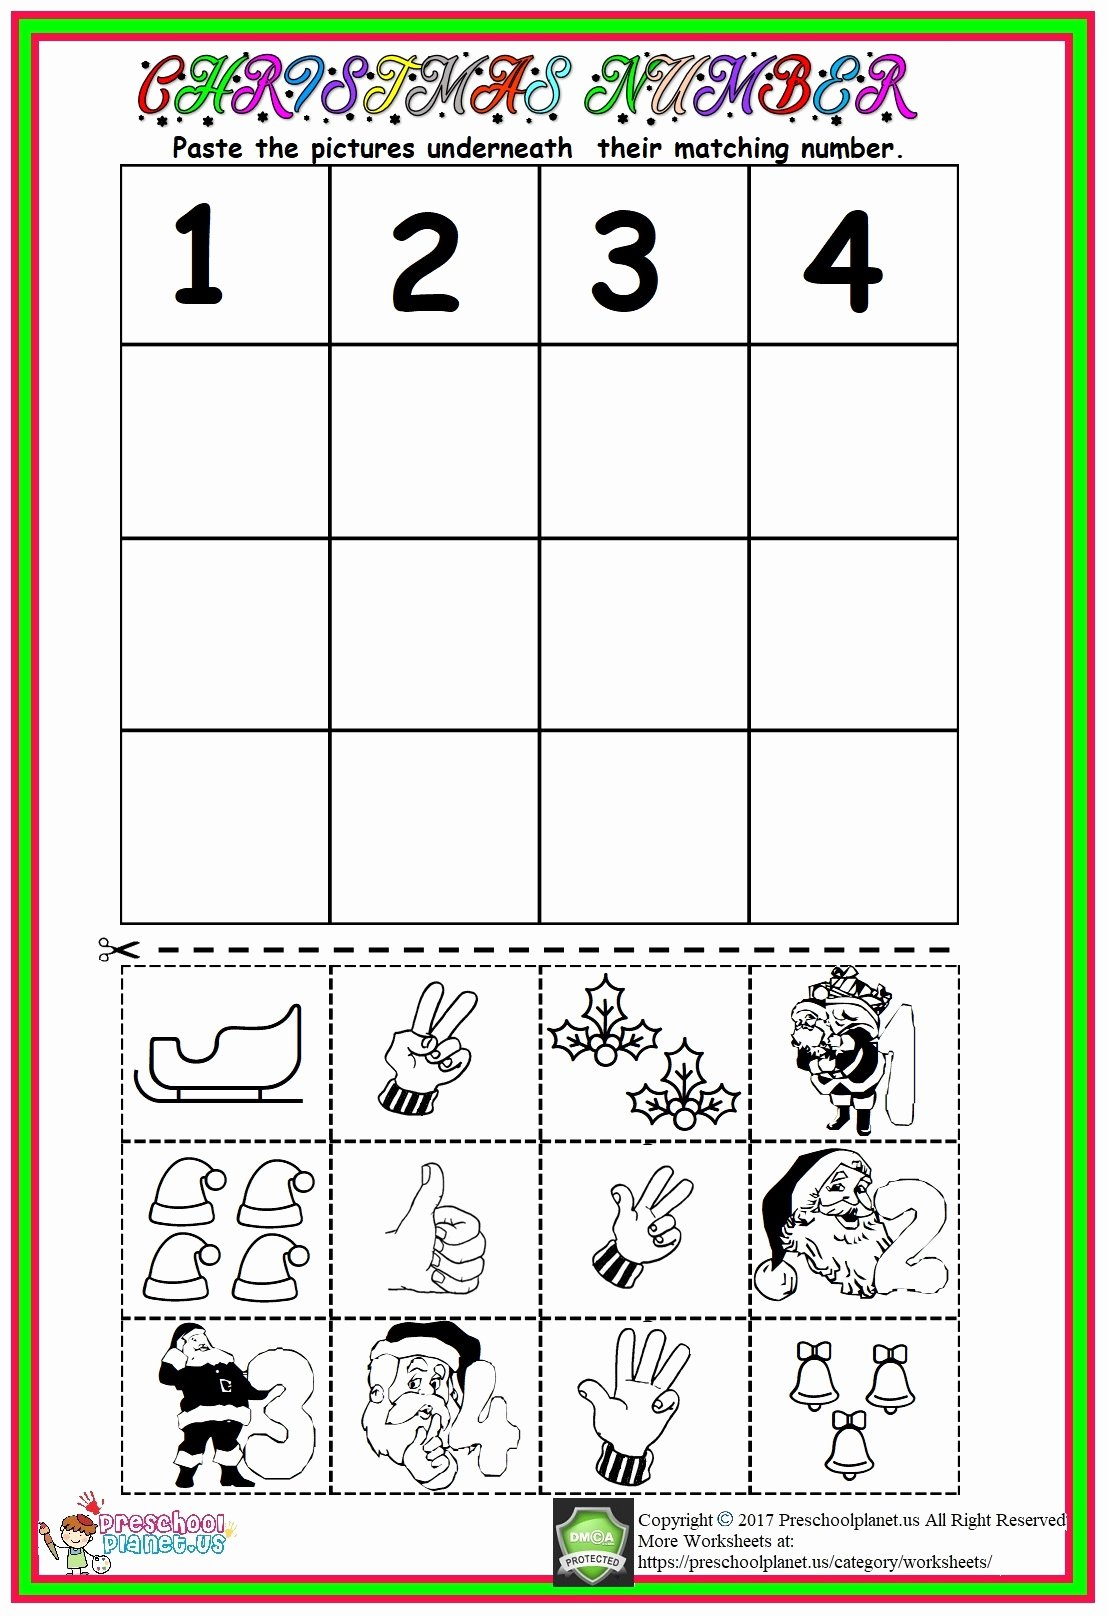 Christmas Number Worksheets for Preschoolers Awesome Christmas Number Worksheet – Preschoolplanet